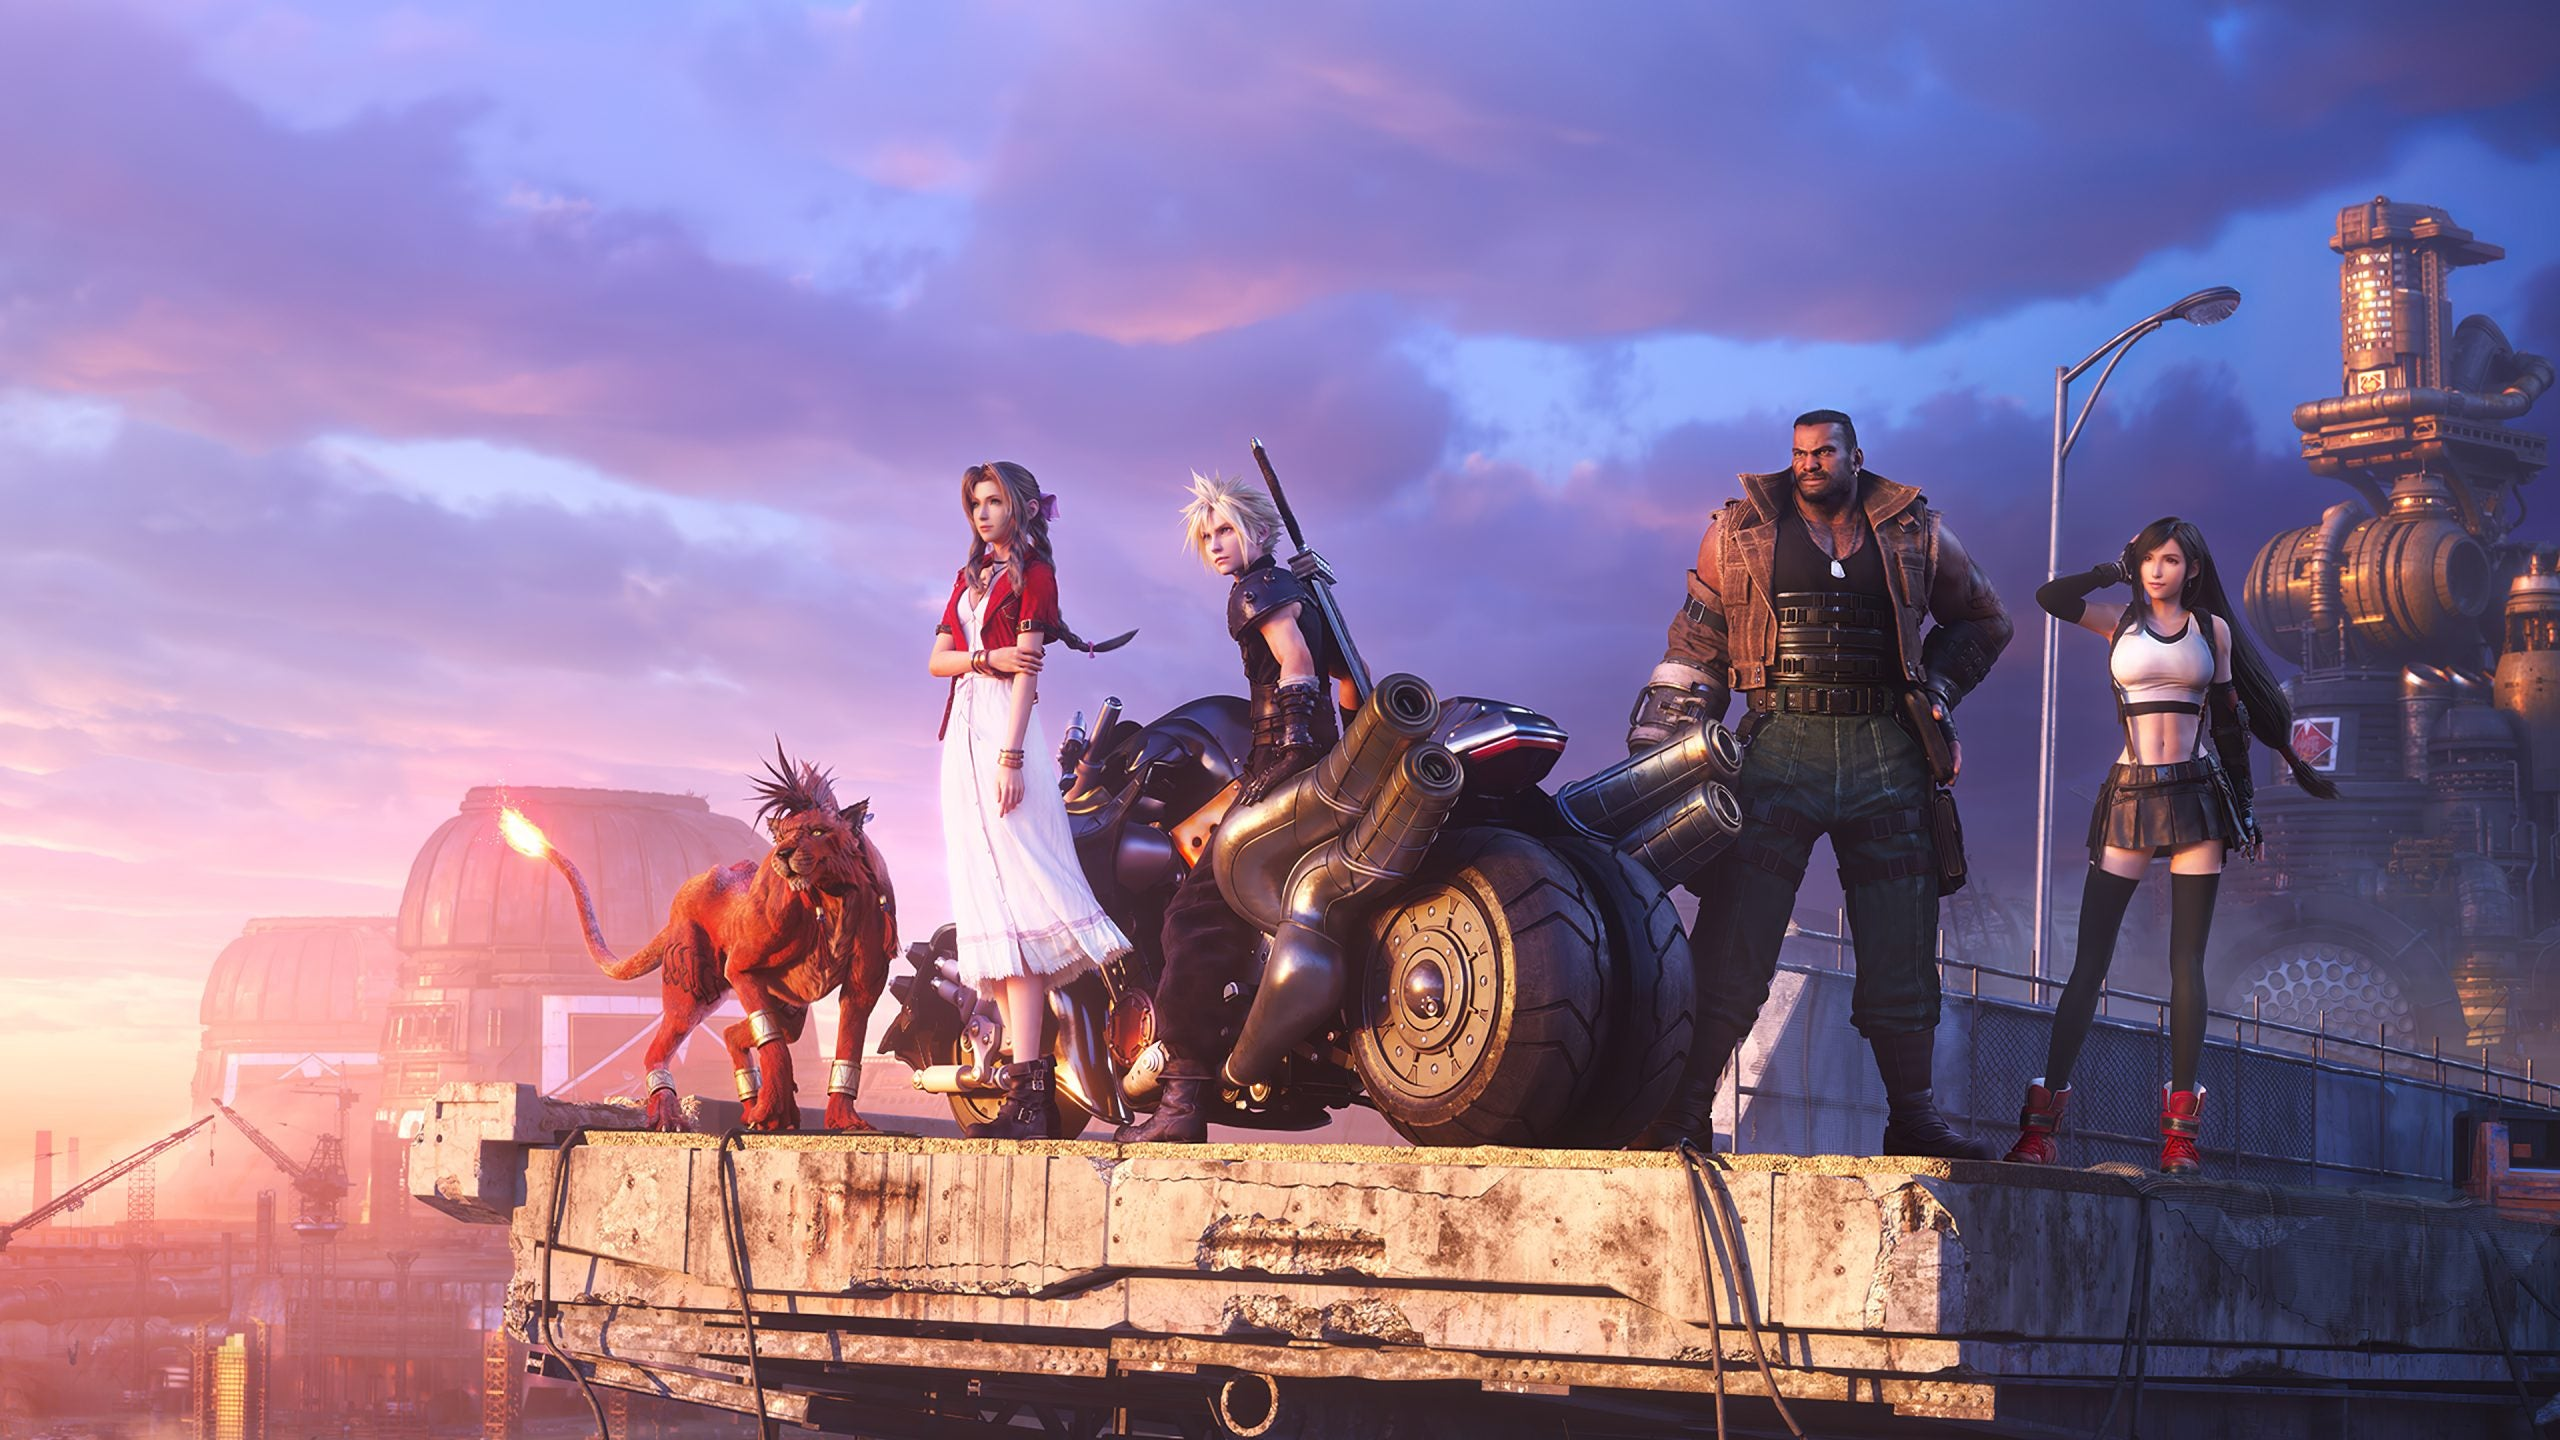 final-fantasy-7-remake-for-pc-everything-we-know-so-far